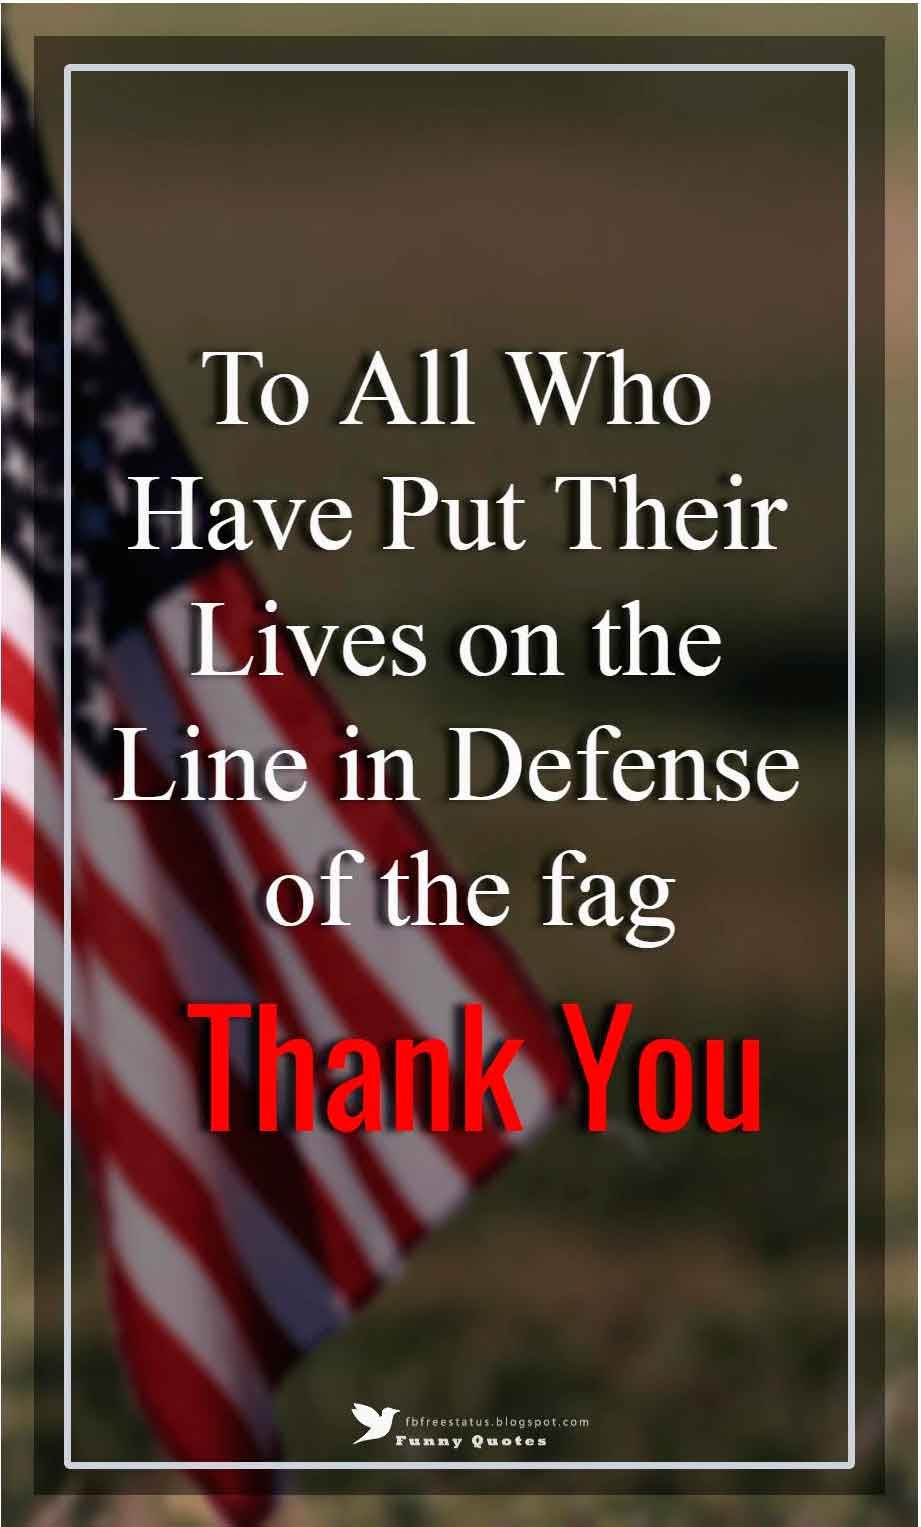 To all who have put their lives on the line in defense of the flag thank you